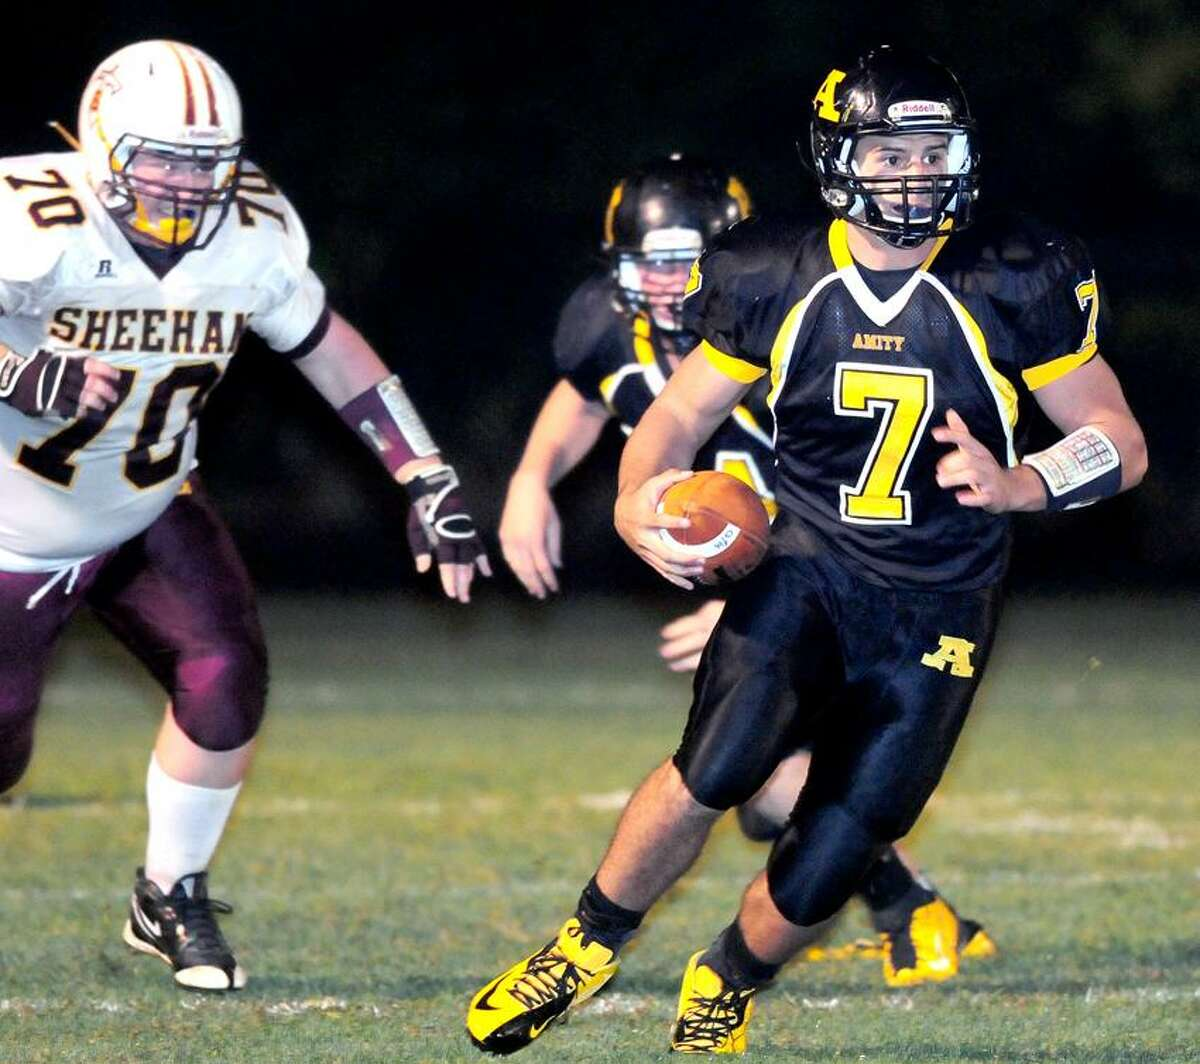 Amity quarterback James Semmonella, right, finds a big hole in the first half against Sheehan. Amity won 58-14. Photo by Arnold Gold/New Haven Register